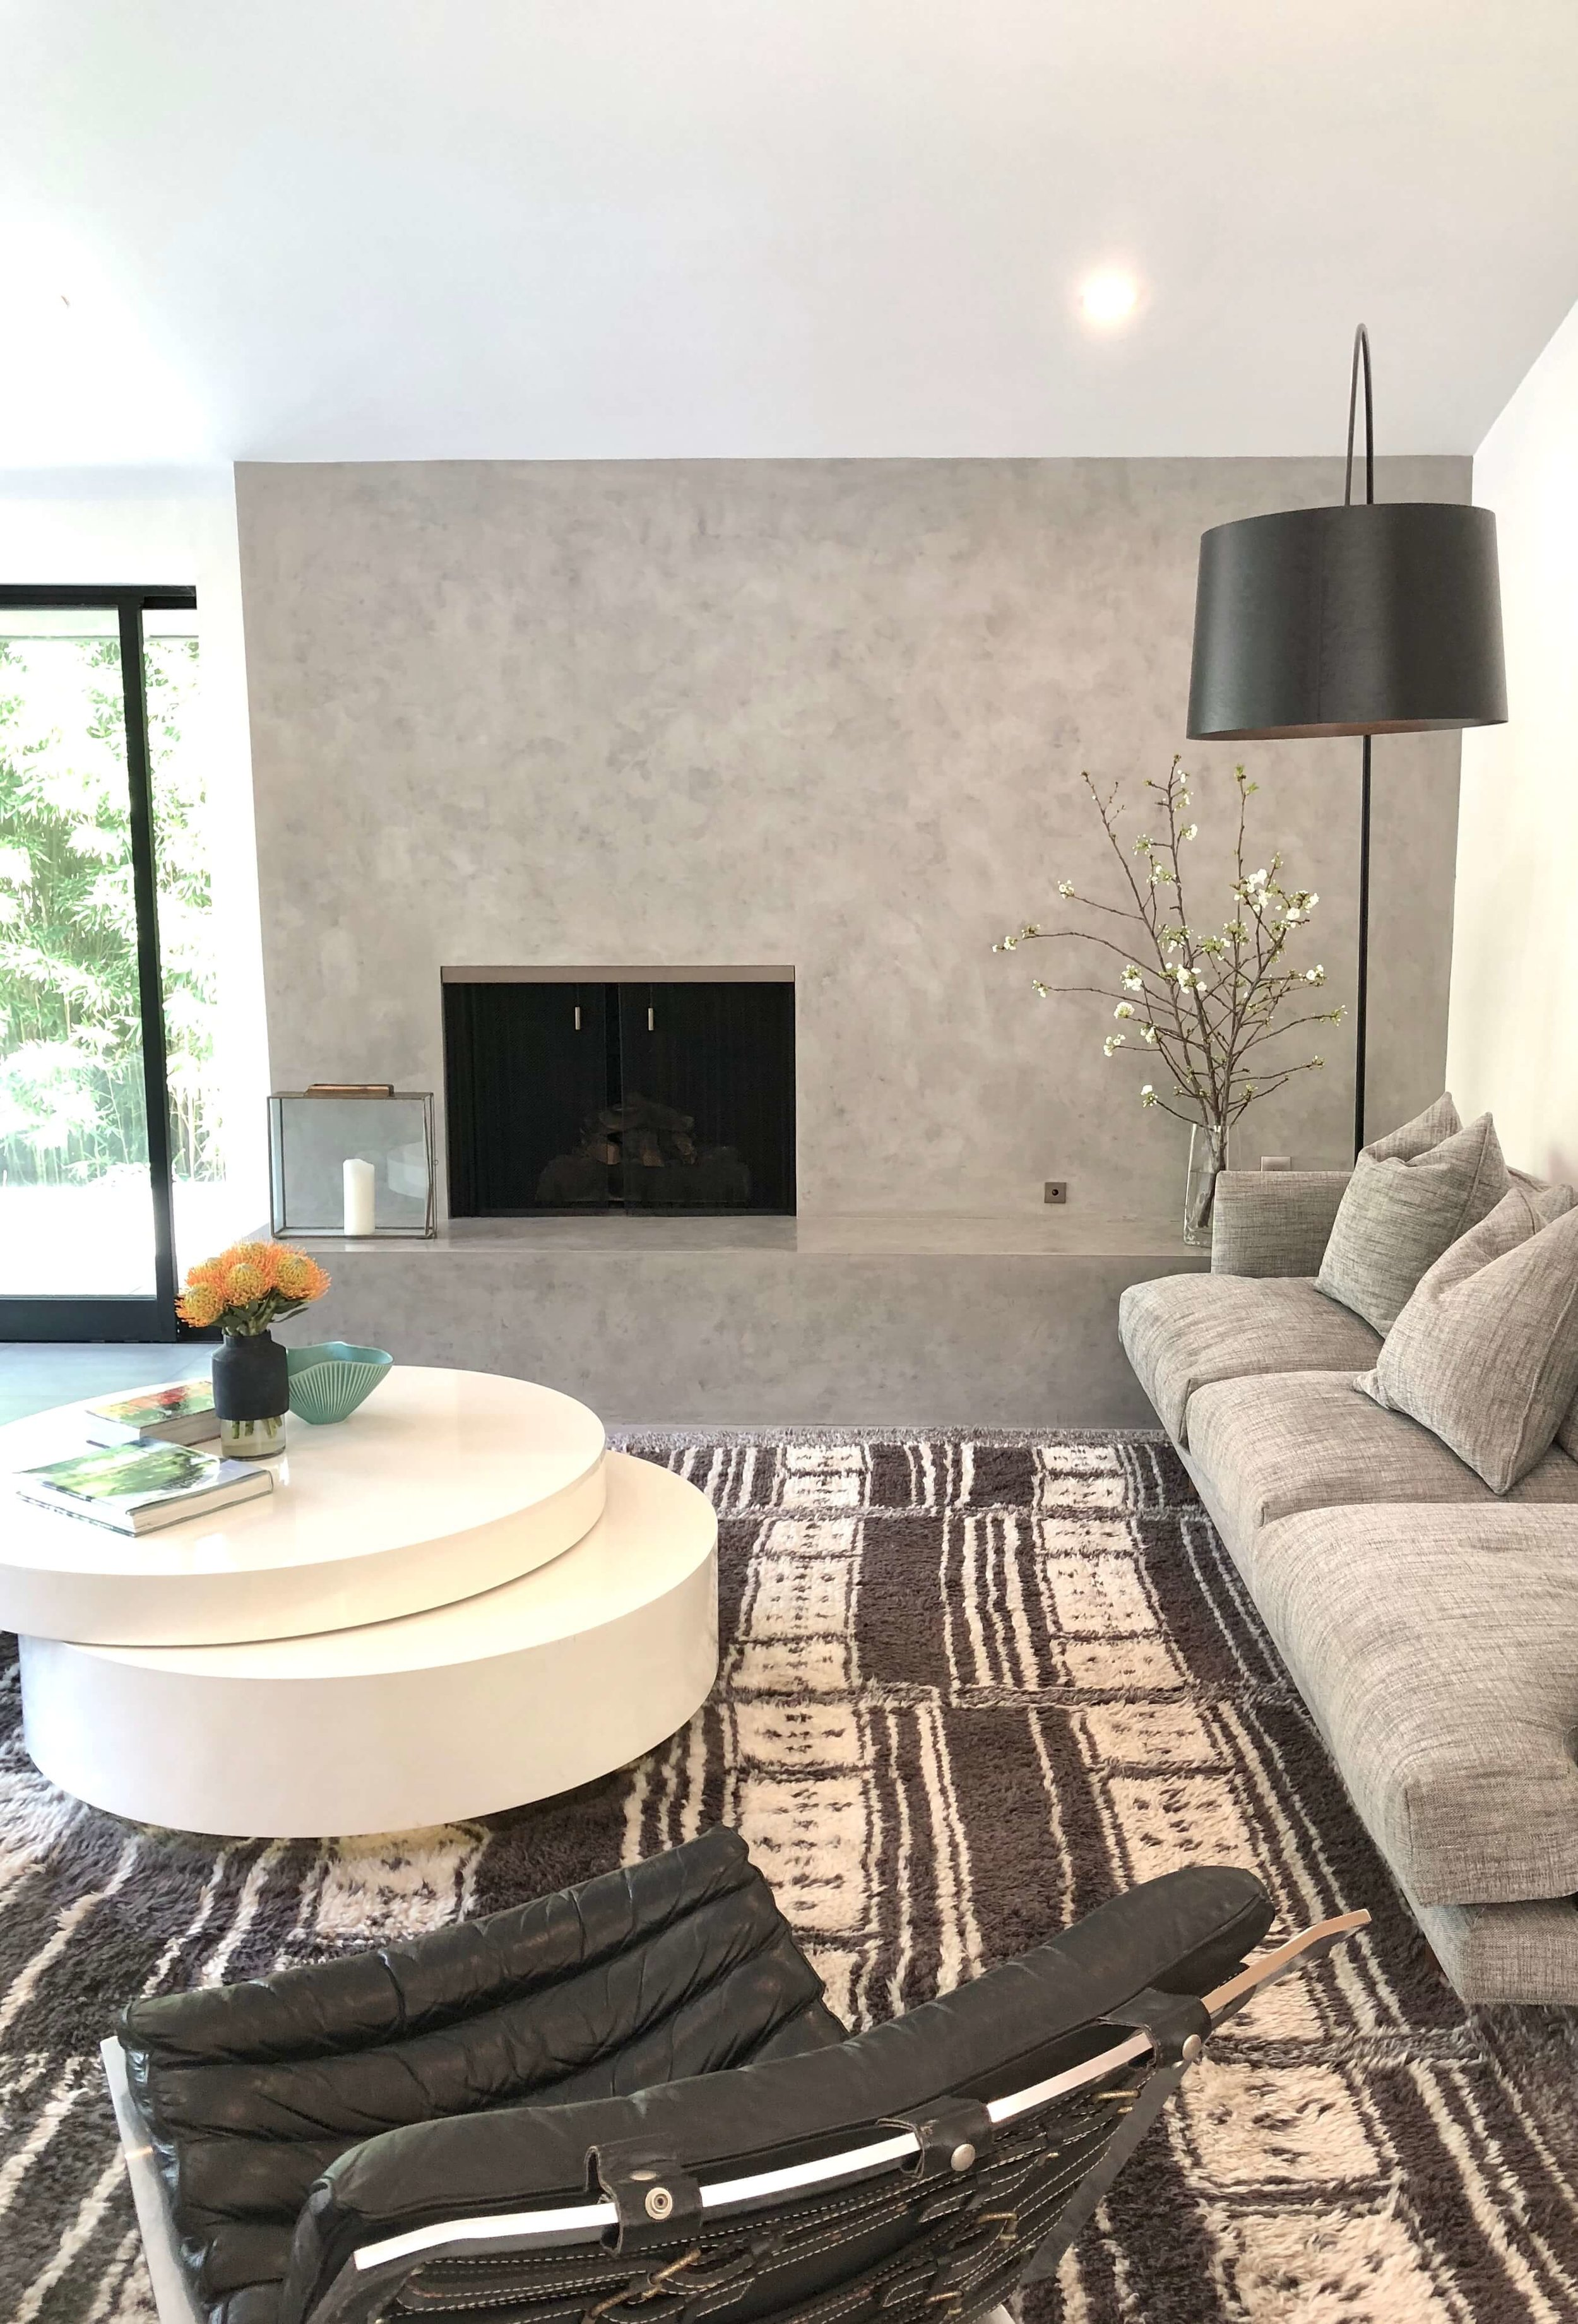 Living room with concrete look fireplace - Assembledge+ Architects, Dwell on Design, Los Angeles, California #concretefireplace #fireplace #livingroom